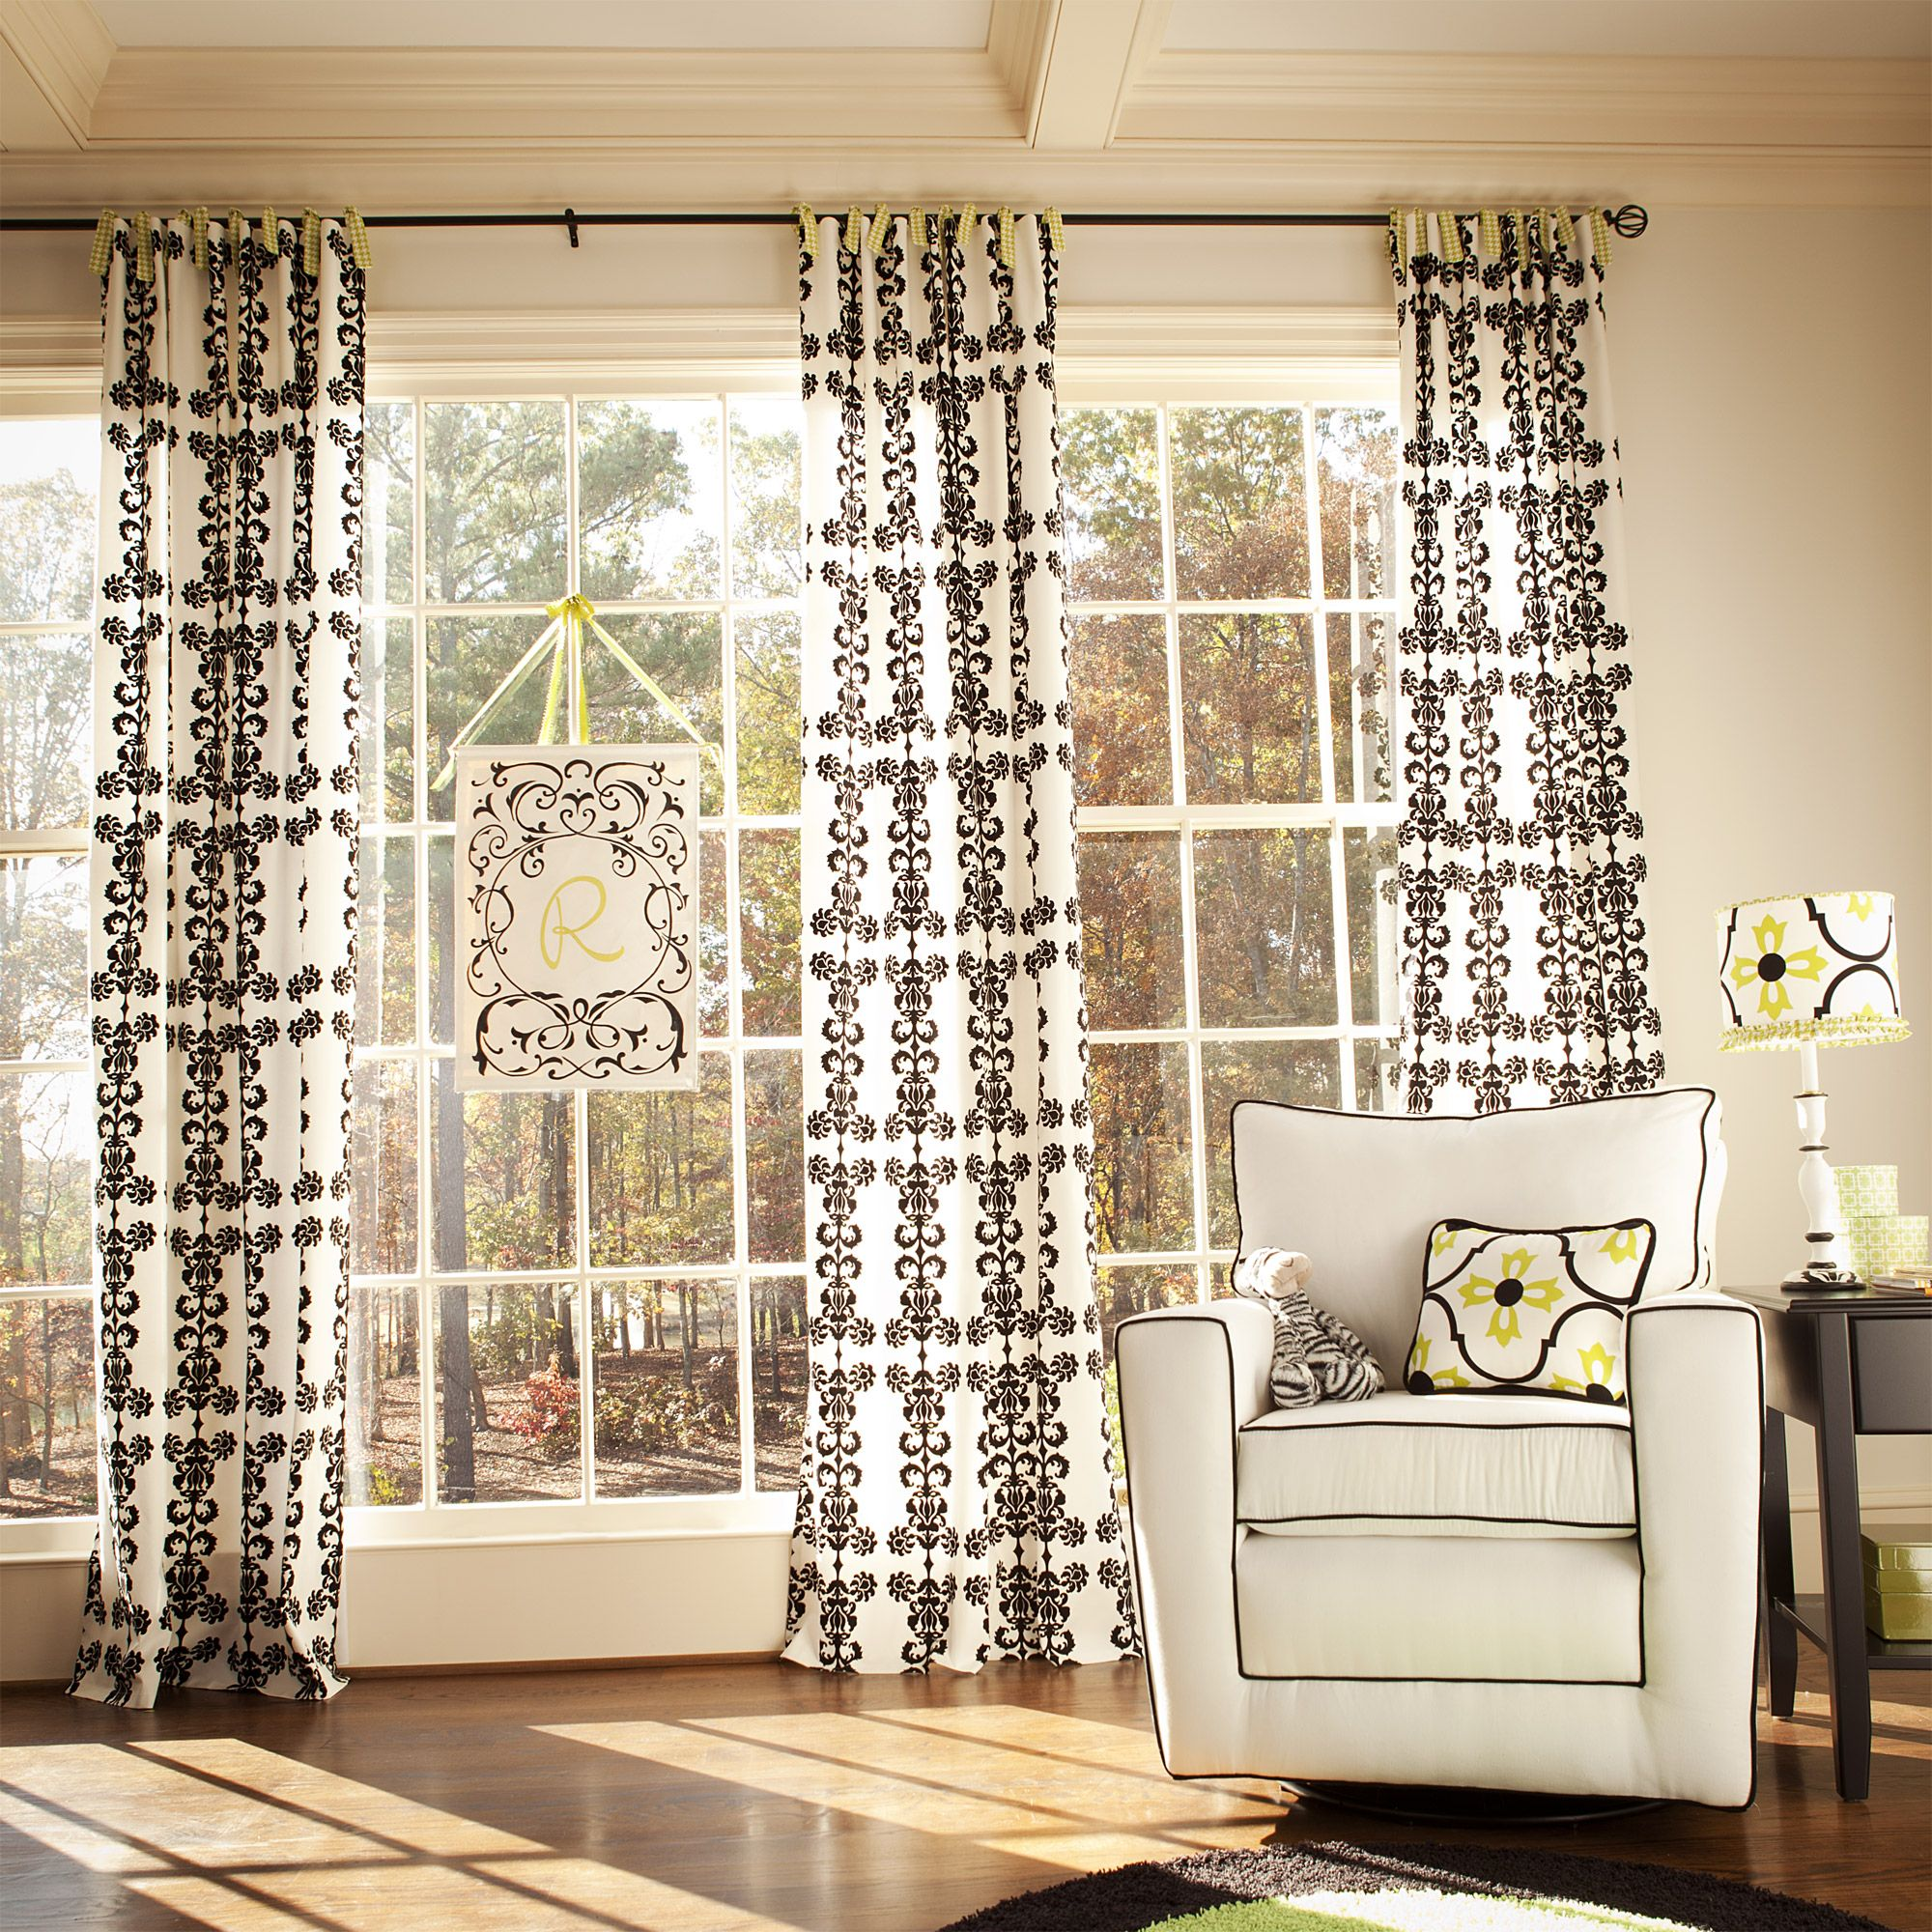 Damask curtains living room - Logan Black And Lime Drapes Black And White Damask Curtains With Lime Houndstooth Carousel